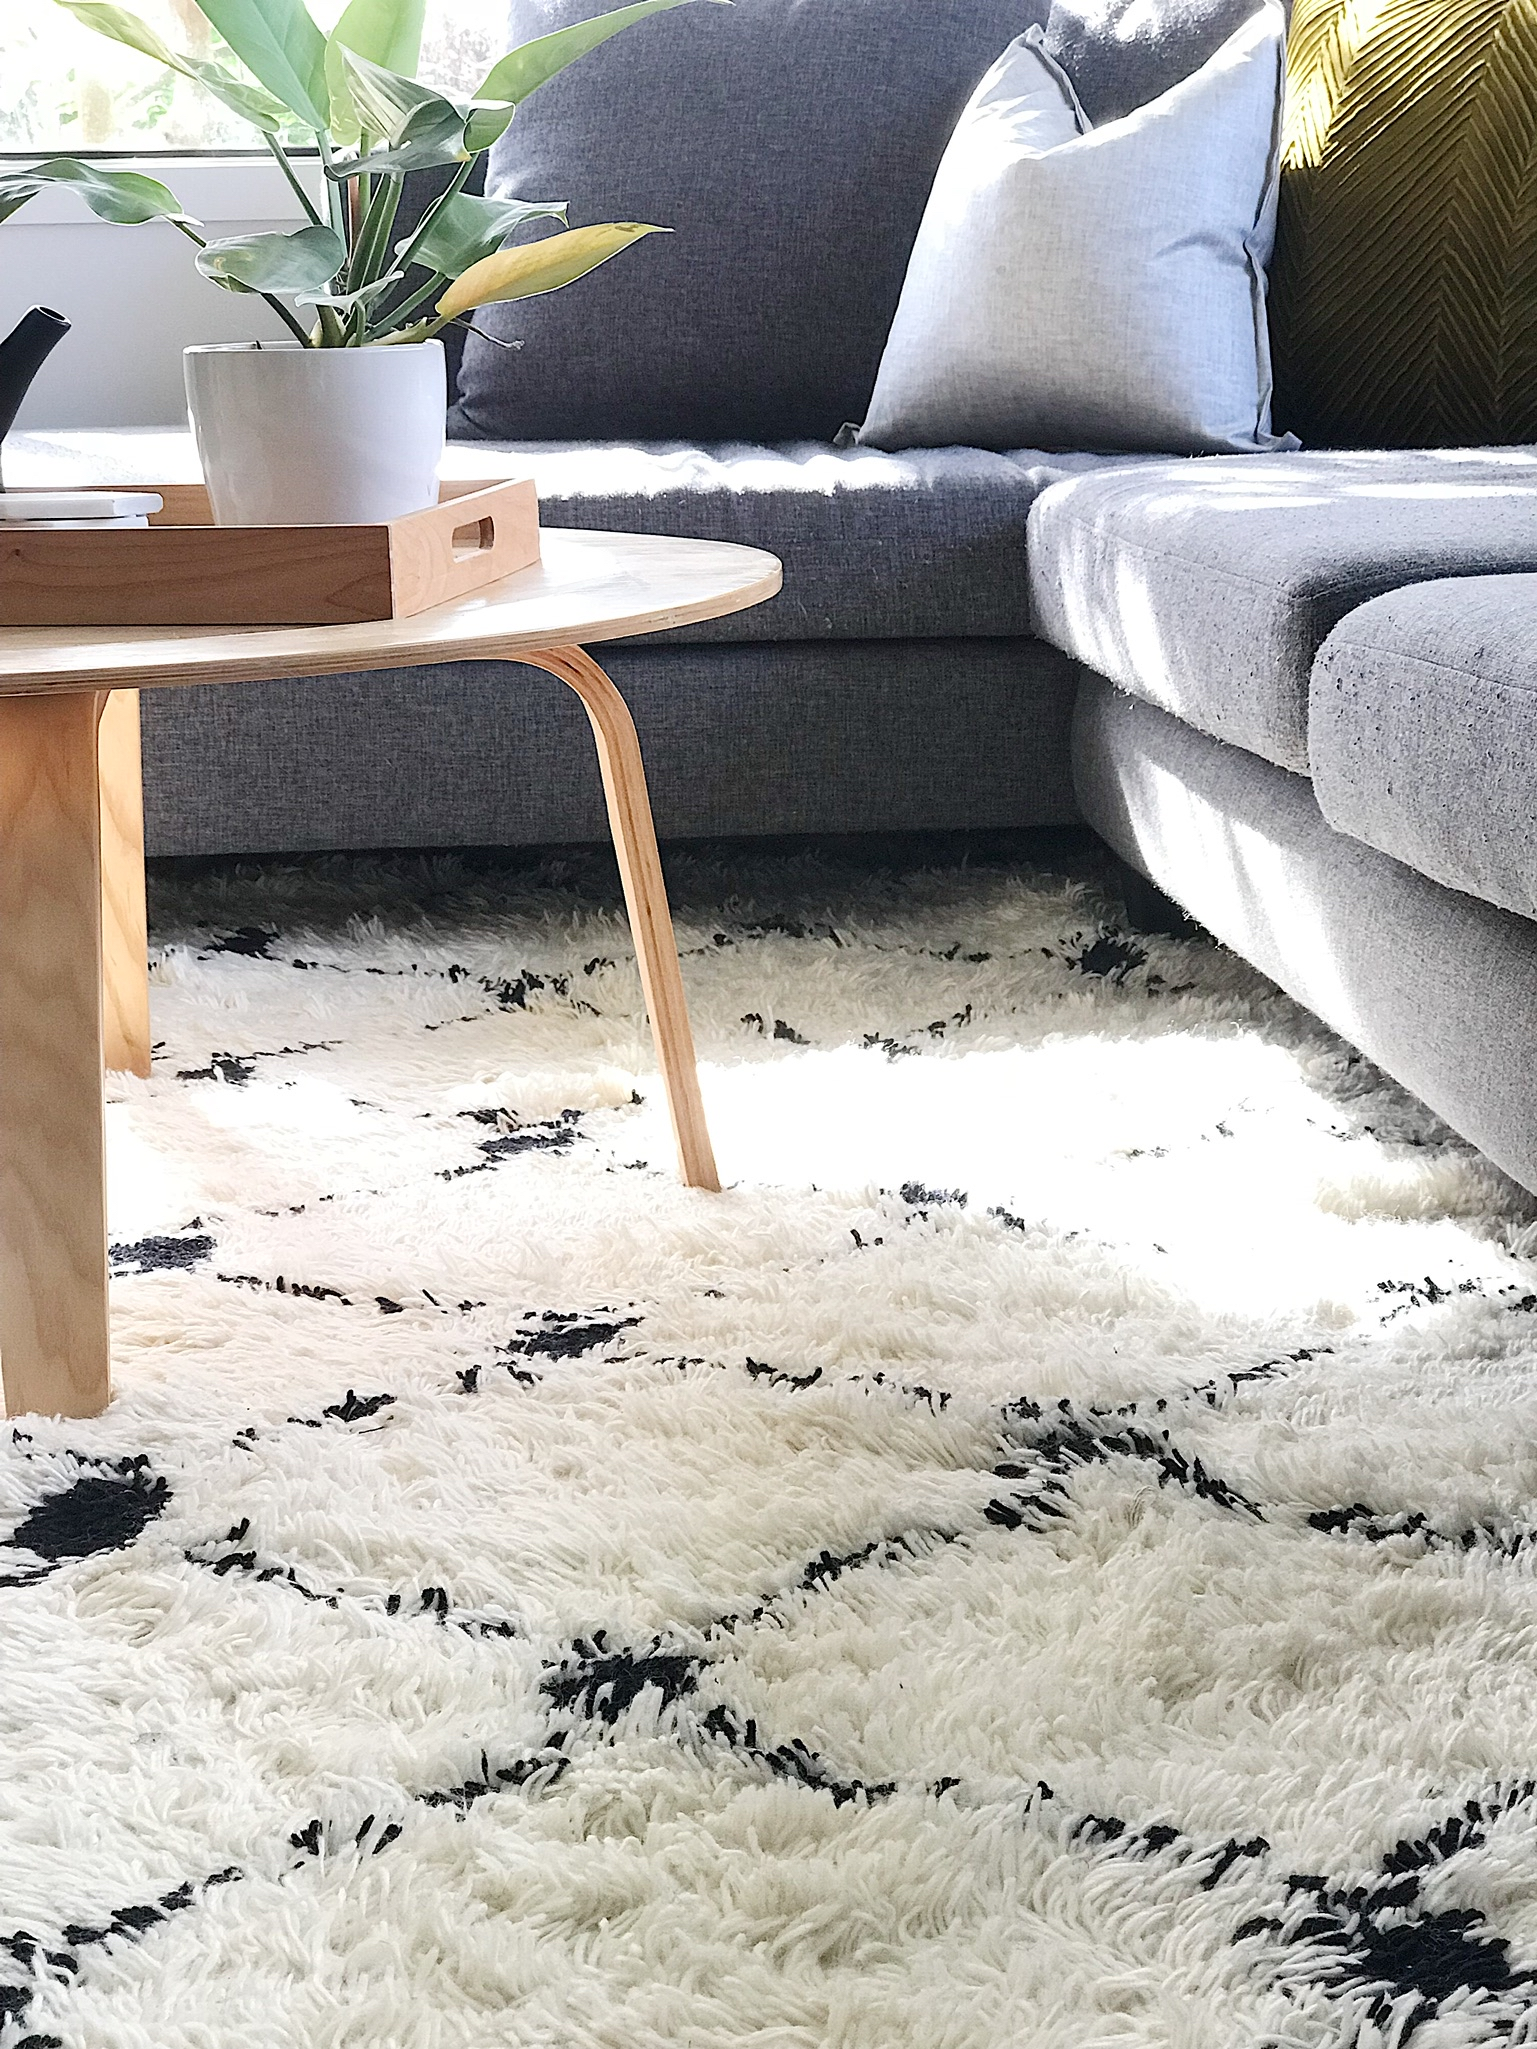 Pearson + Project The Reno Race The Rookies Lounge Tawa Floor Small Space Lounge Plant TV Unit Rug Couch.jpg